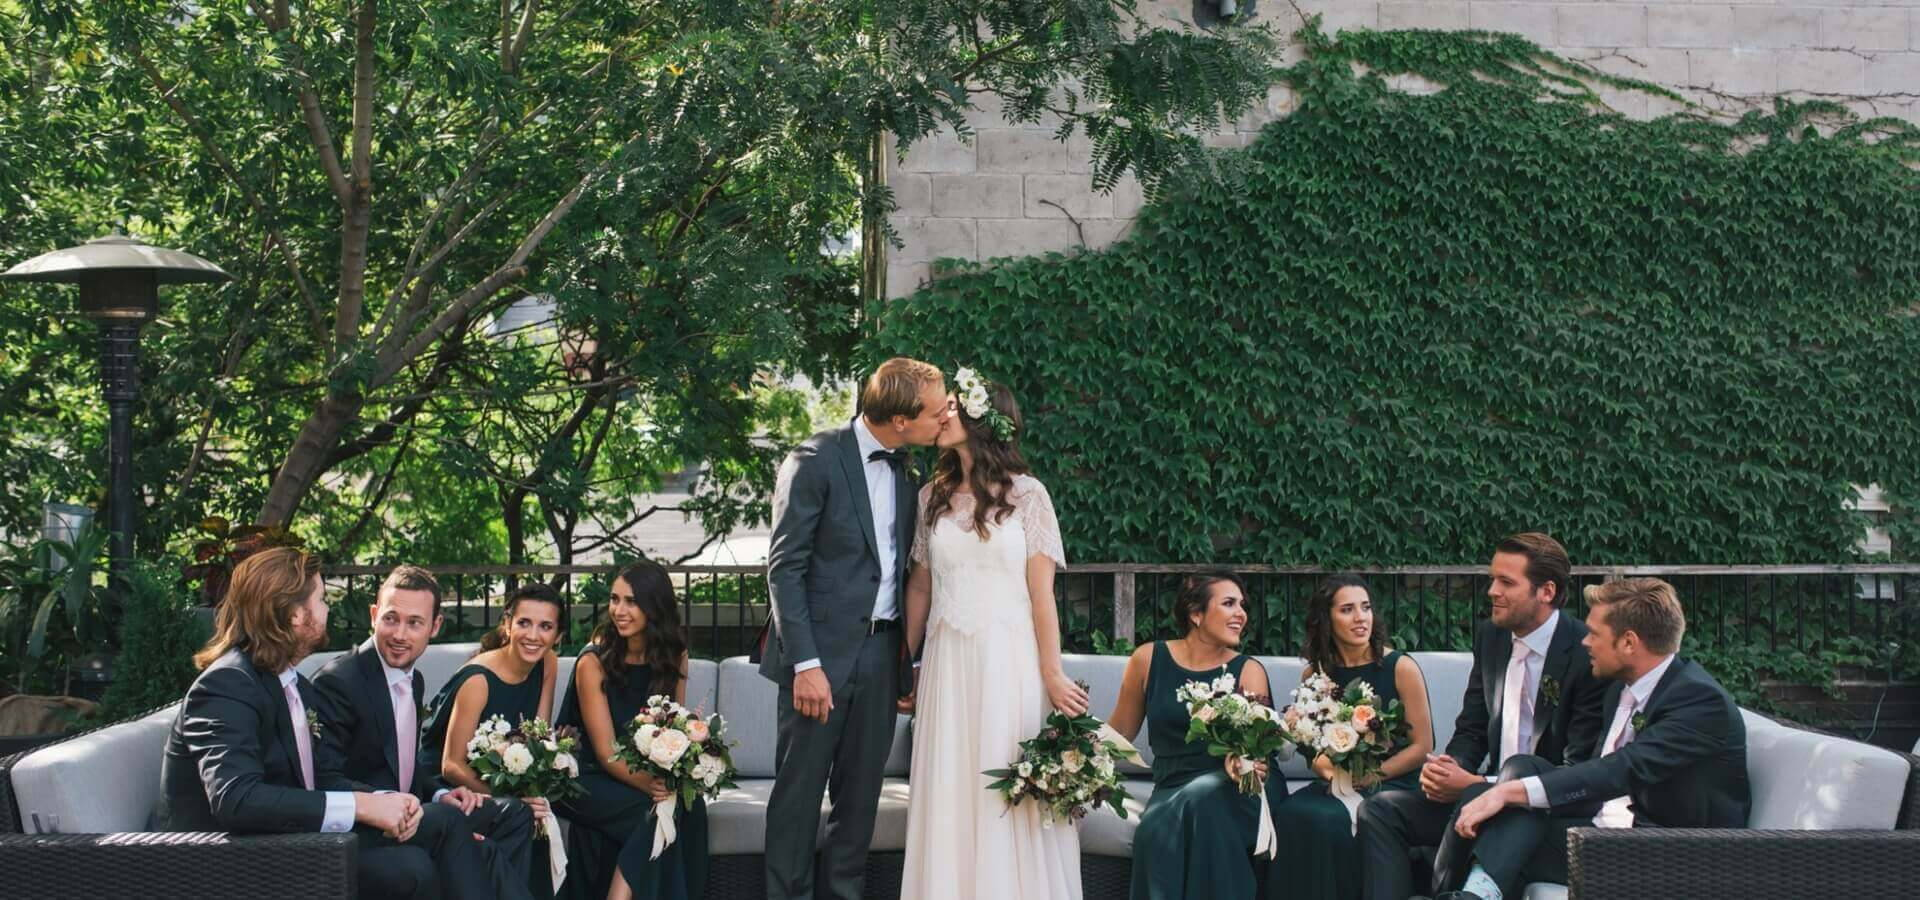 Hero image for Rayna and Bas' Chic Wedding at Andrew Richard Designs